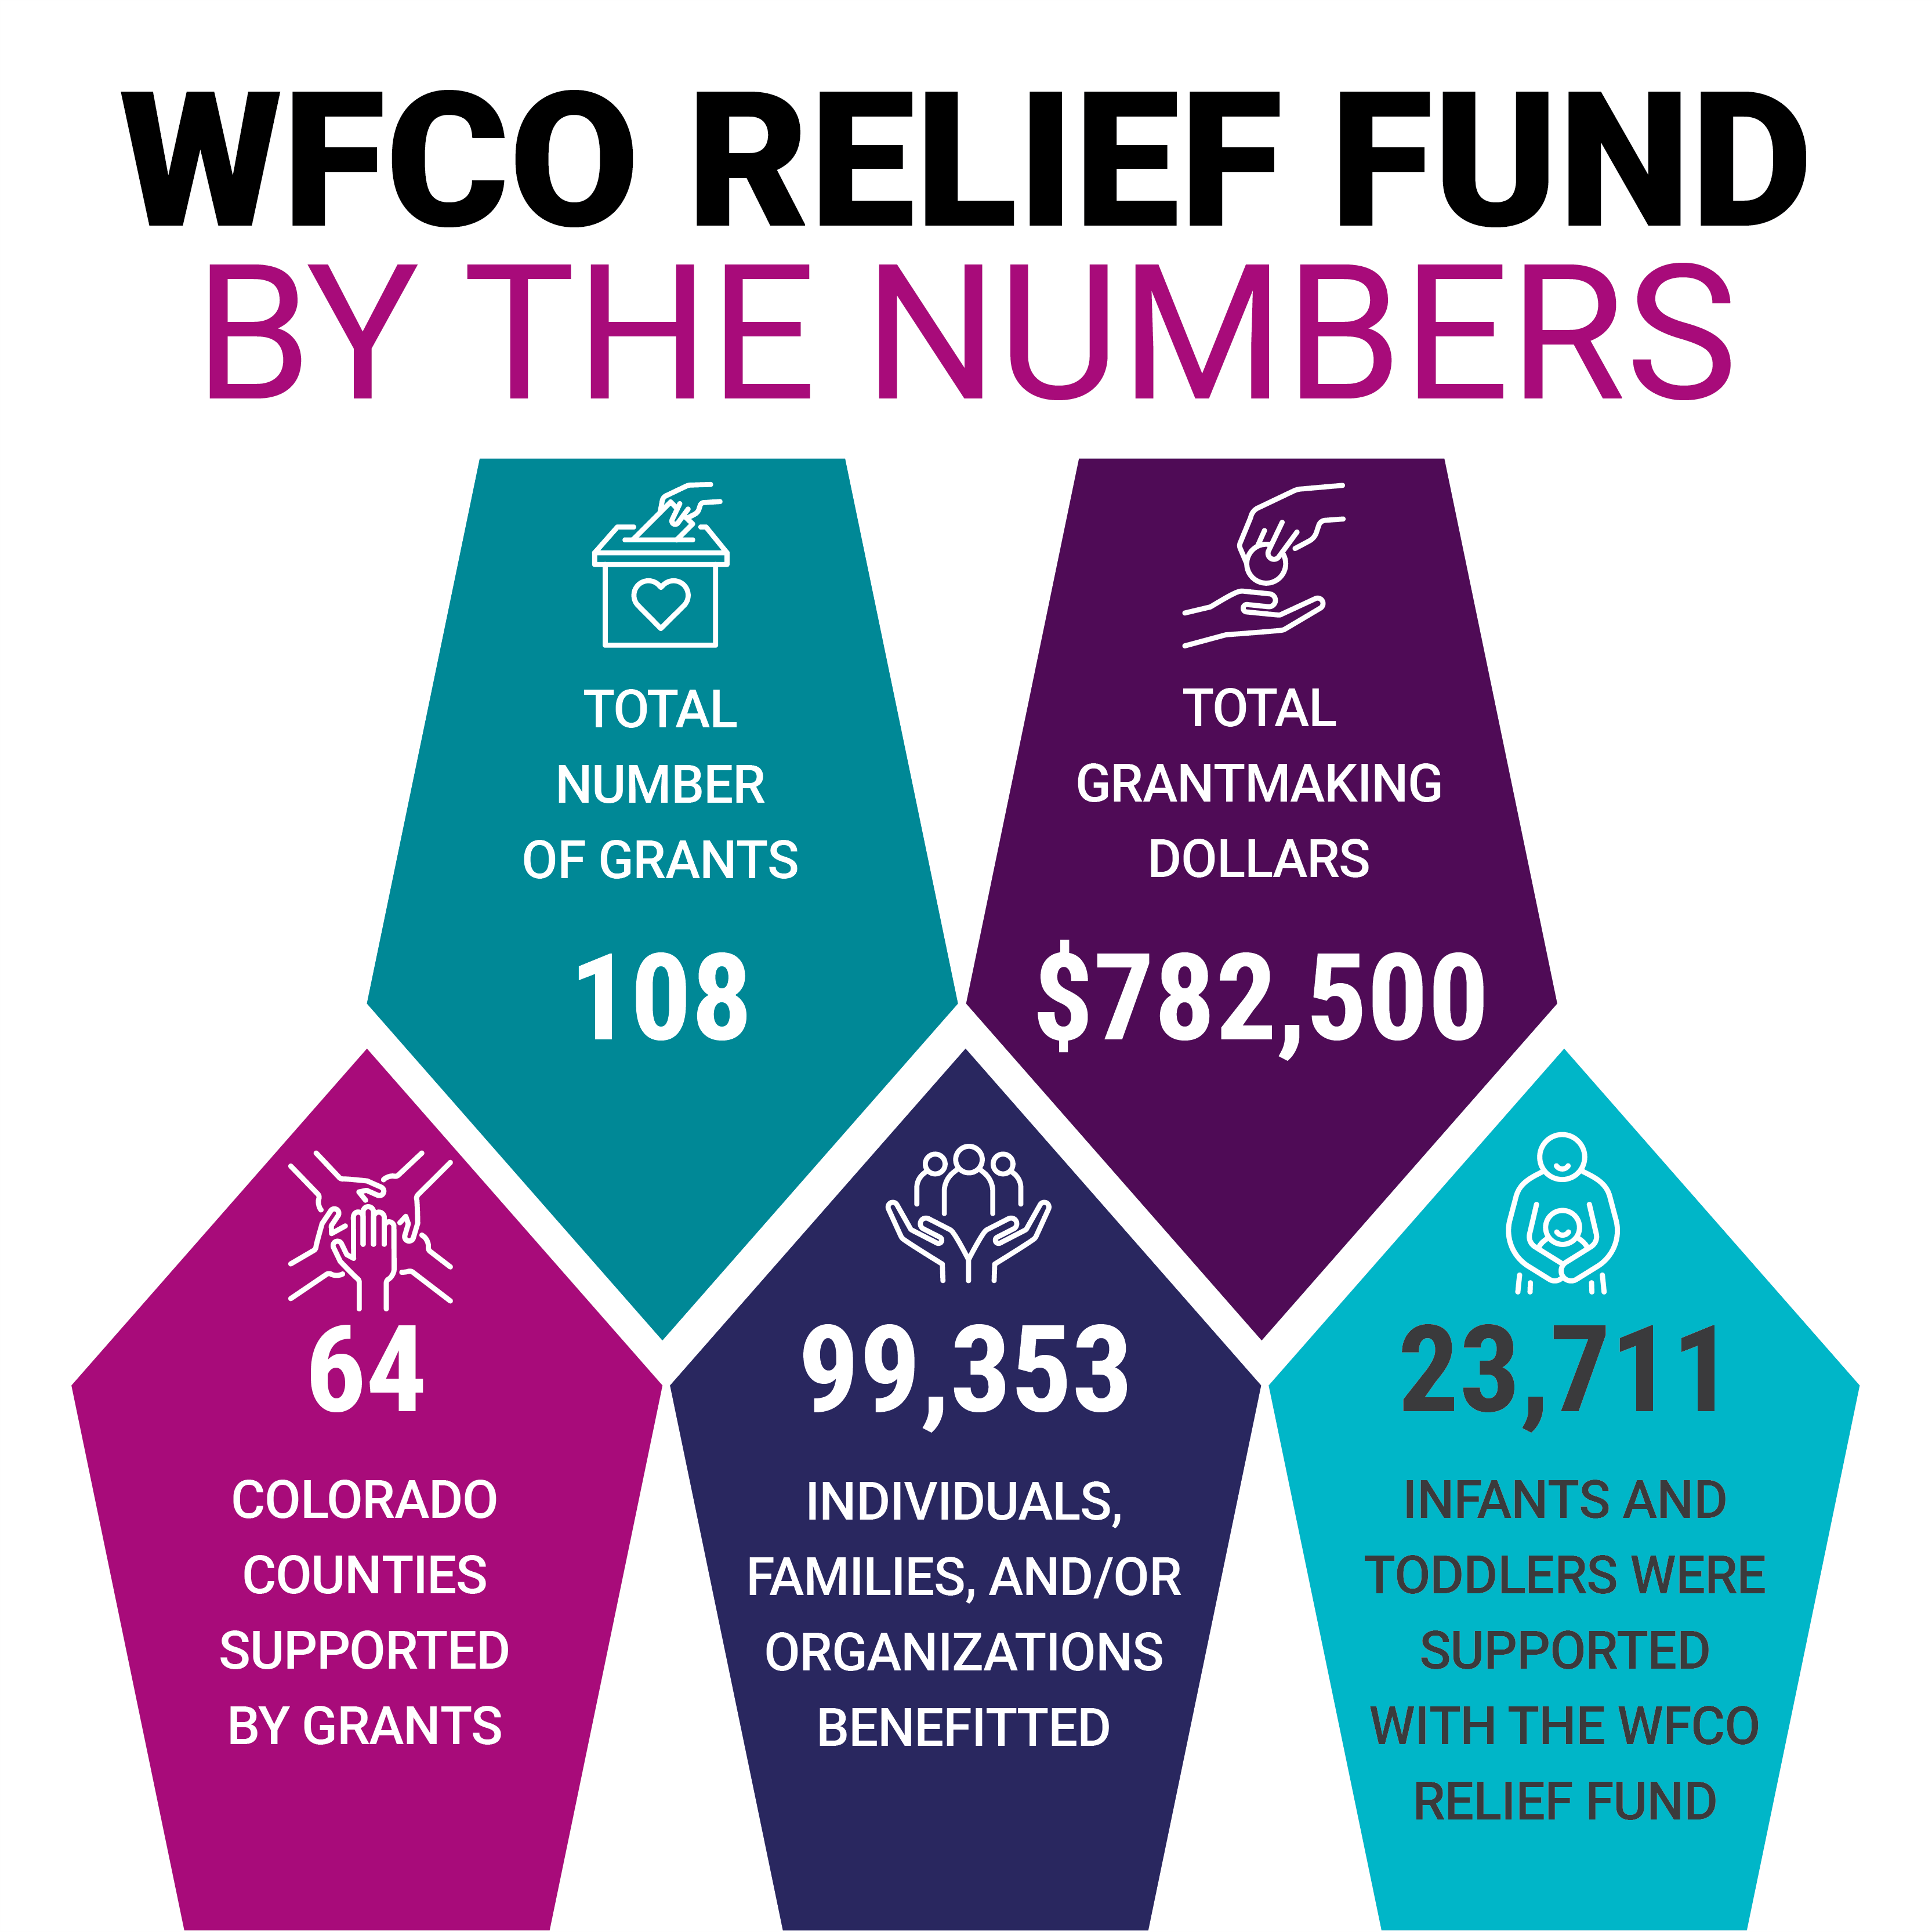 relief fund infographic transparent background